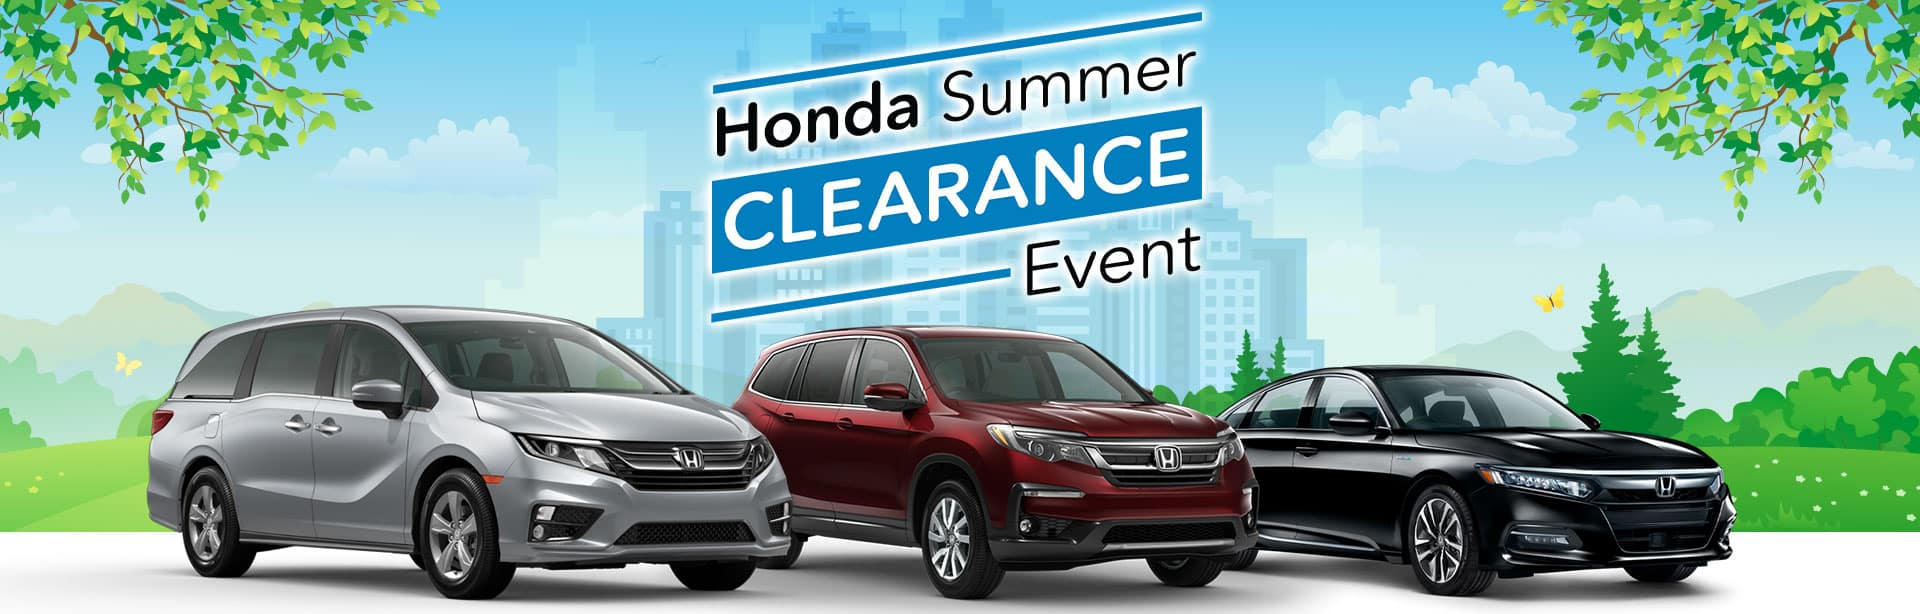 Honda Summer Clearance Event | Stokes Honda Cars of Beaufort